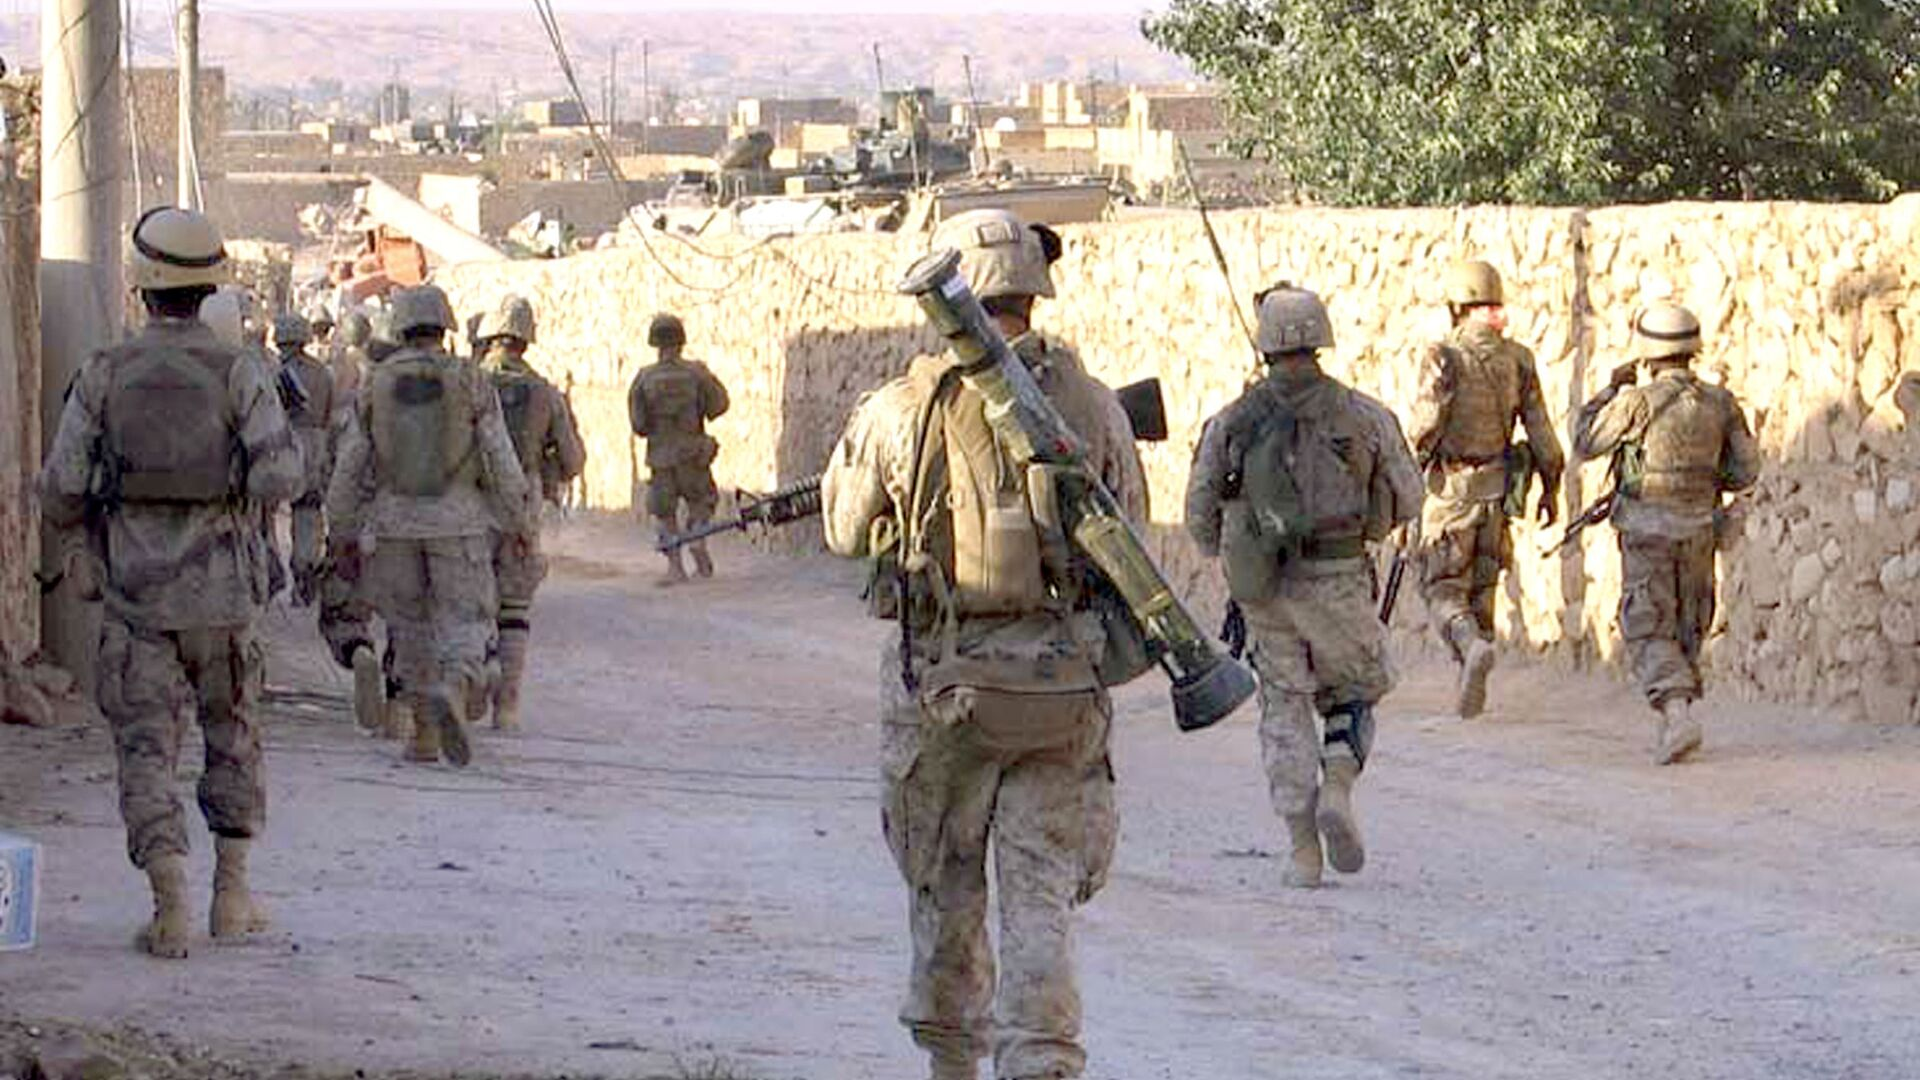 A picture released by the US Marines shows Marines from 3rd Battalion, 2nd Marine Regiment (3/2) and Iraqi Special Forces patrolling a street in the city of Karabilah, near Iraq's northwestern border with Syria (file) - Sputnik Italia, 1920, 03.09.2021